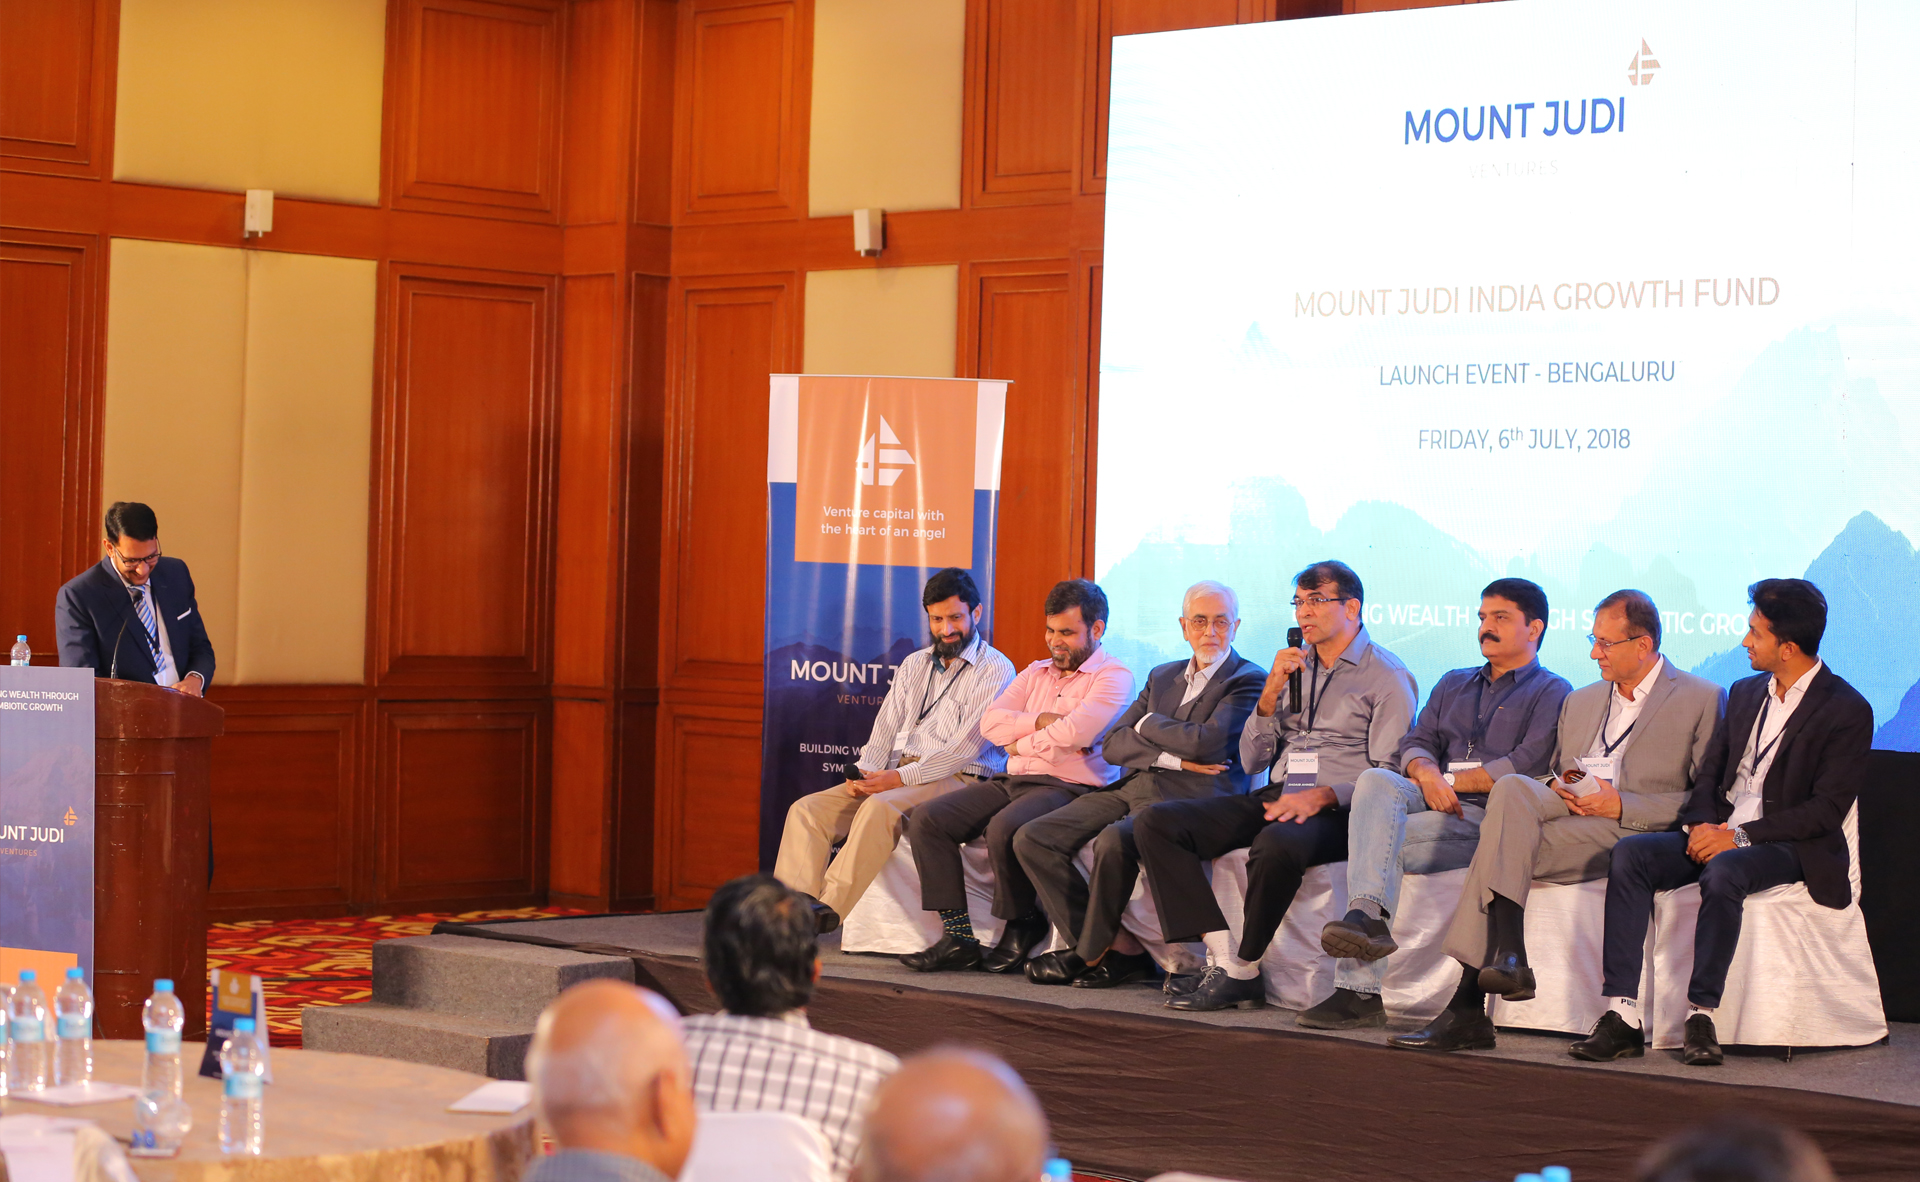 General Partners sharing their motivations for starting Mount Judi Ventures